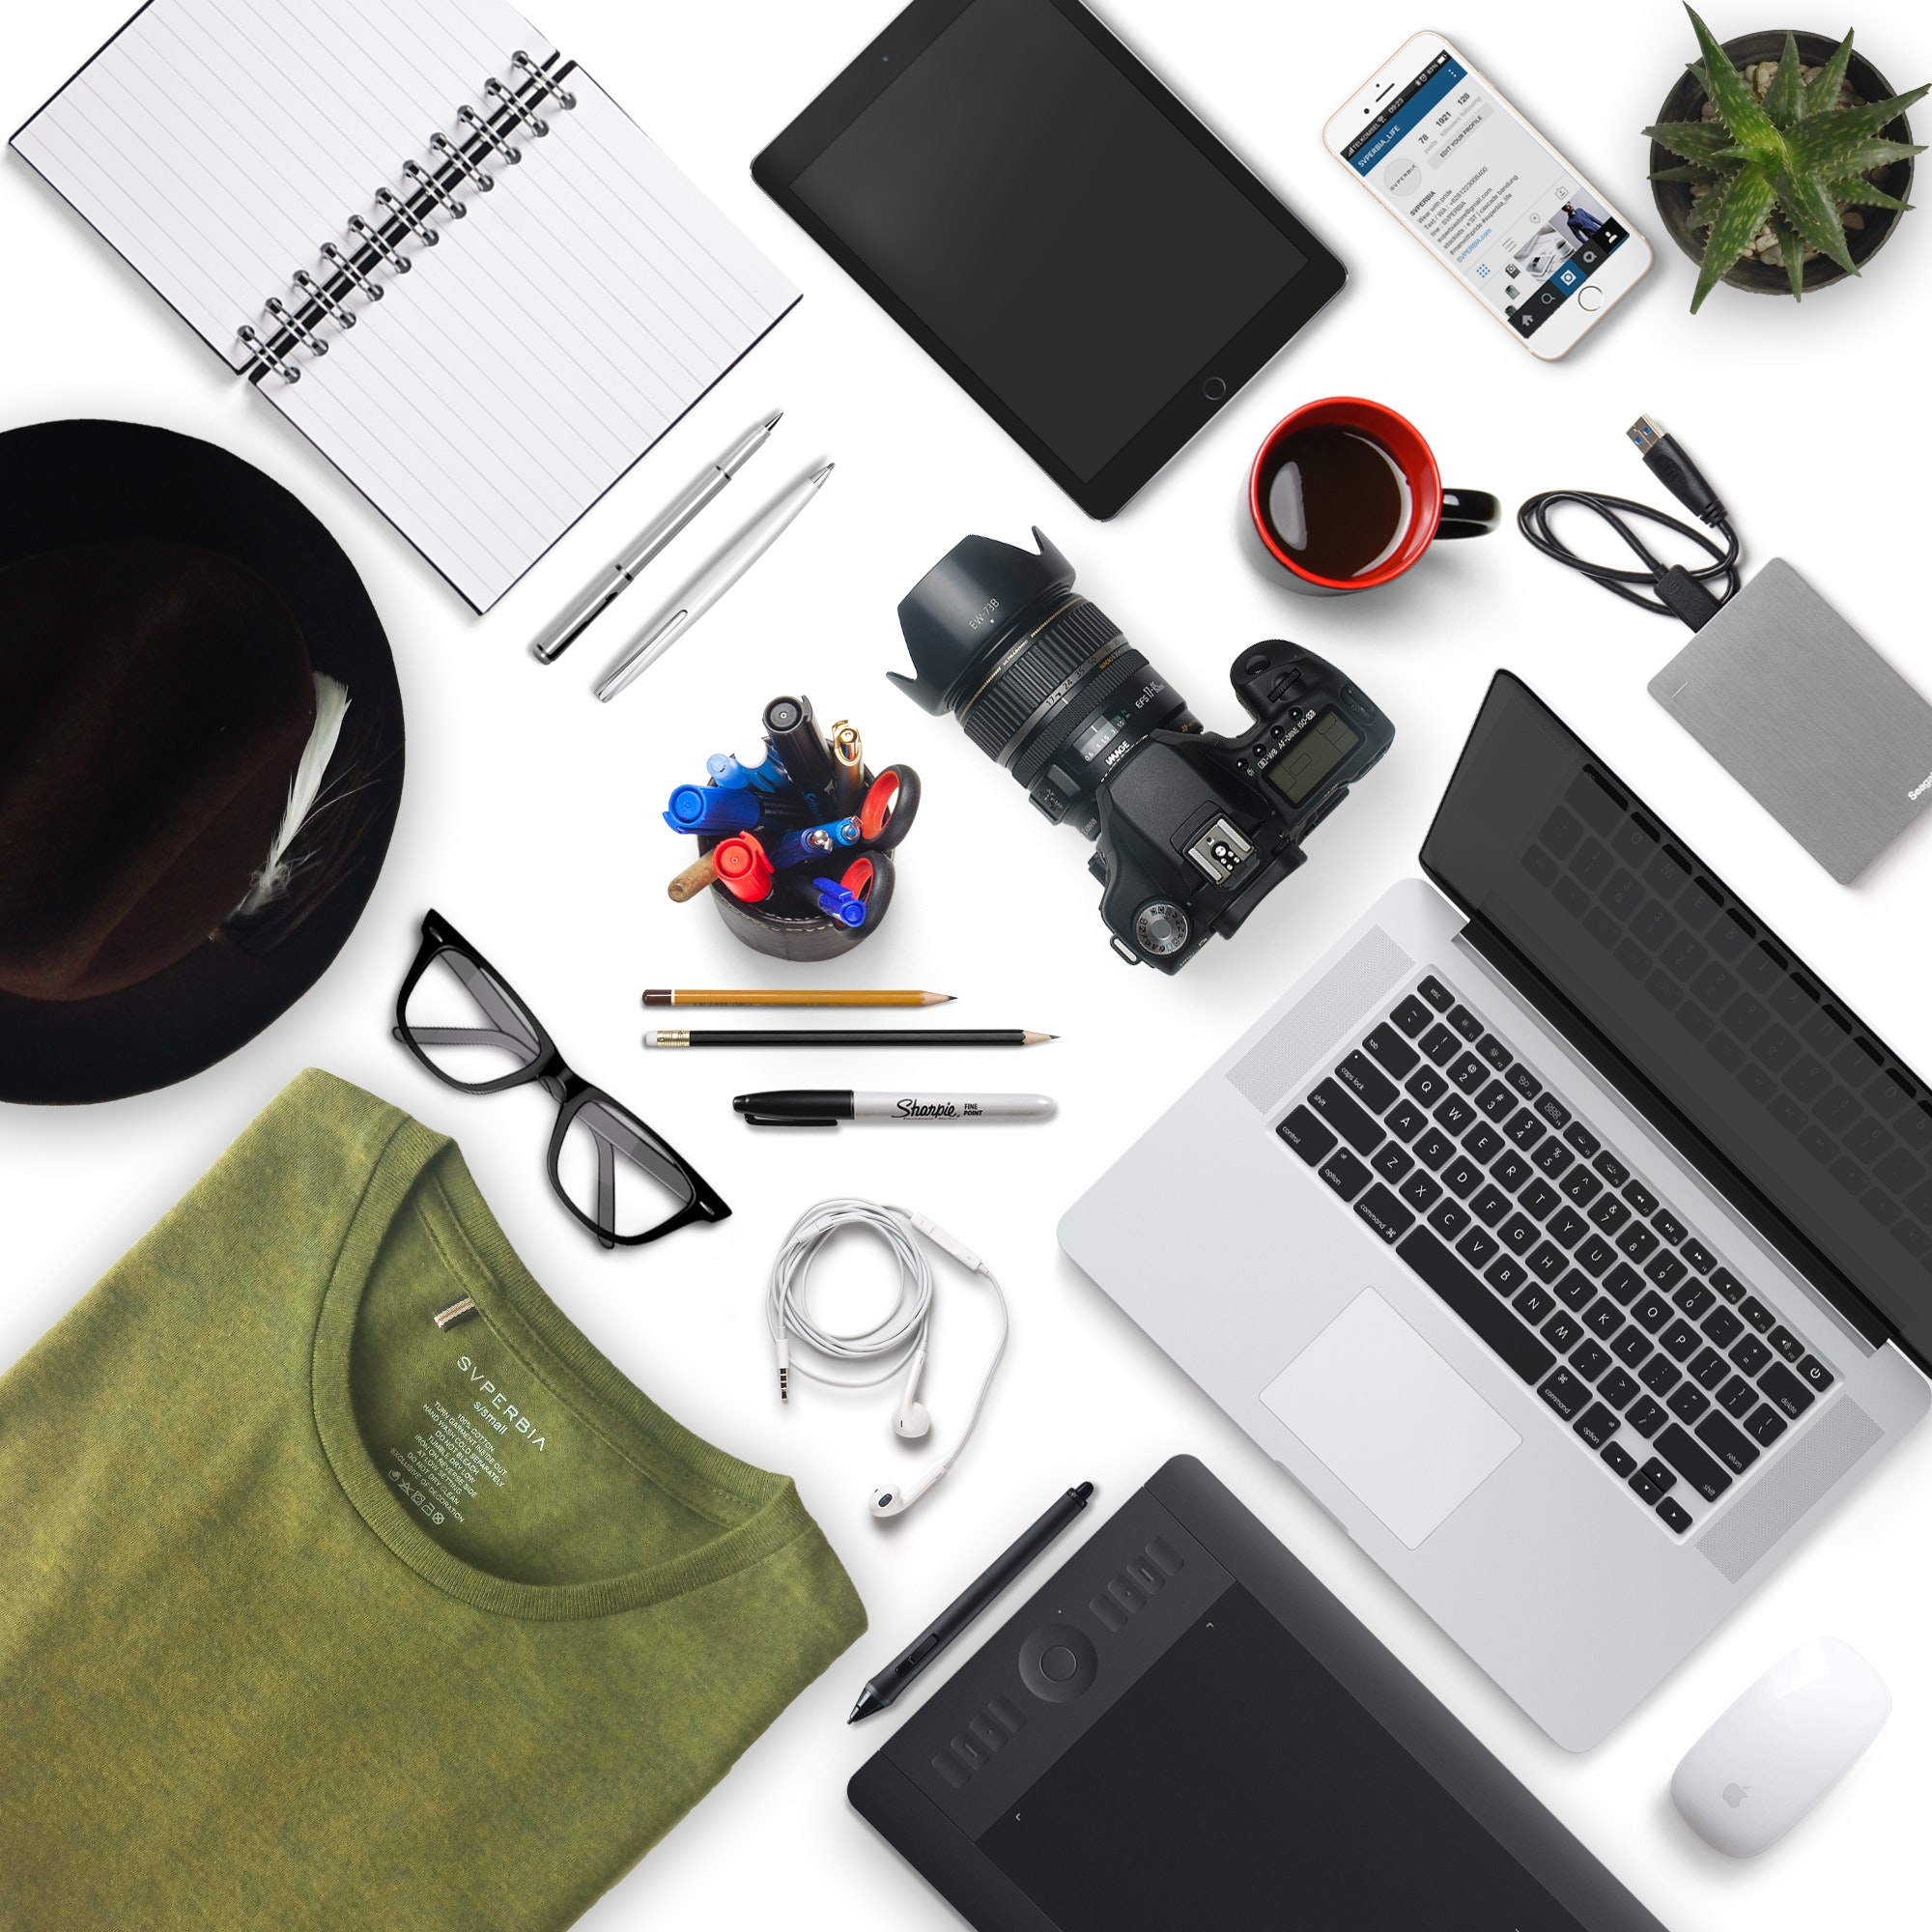 Black and White Laptop Computer, Accessories, Business, Camera, Flatlay, HQ Photo